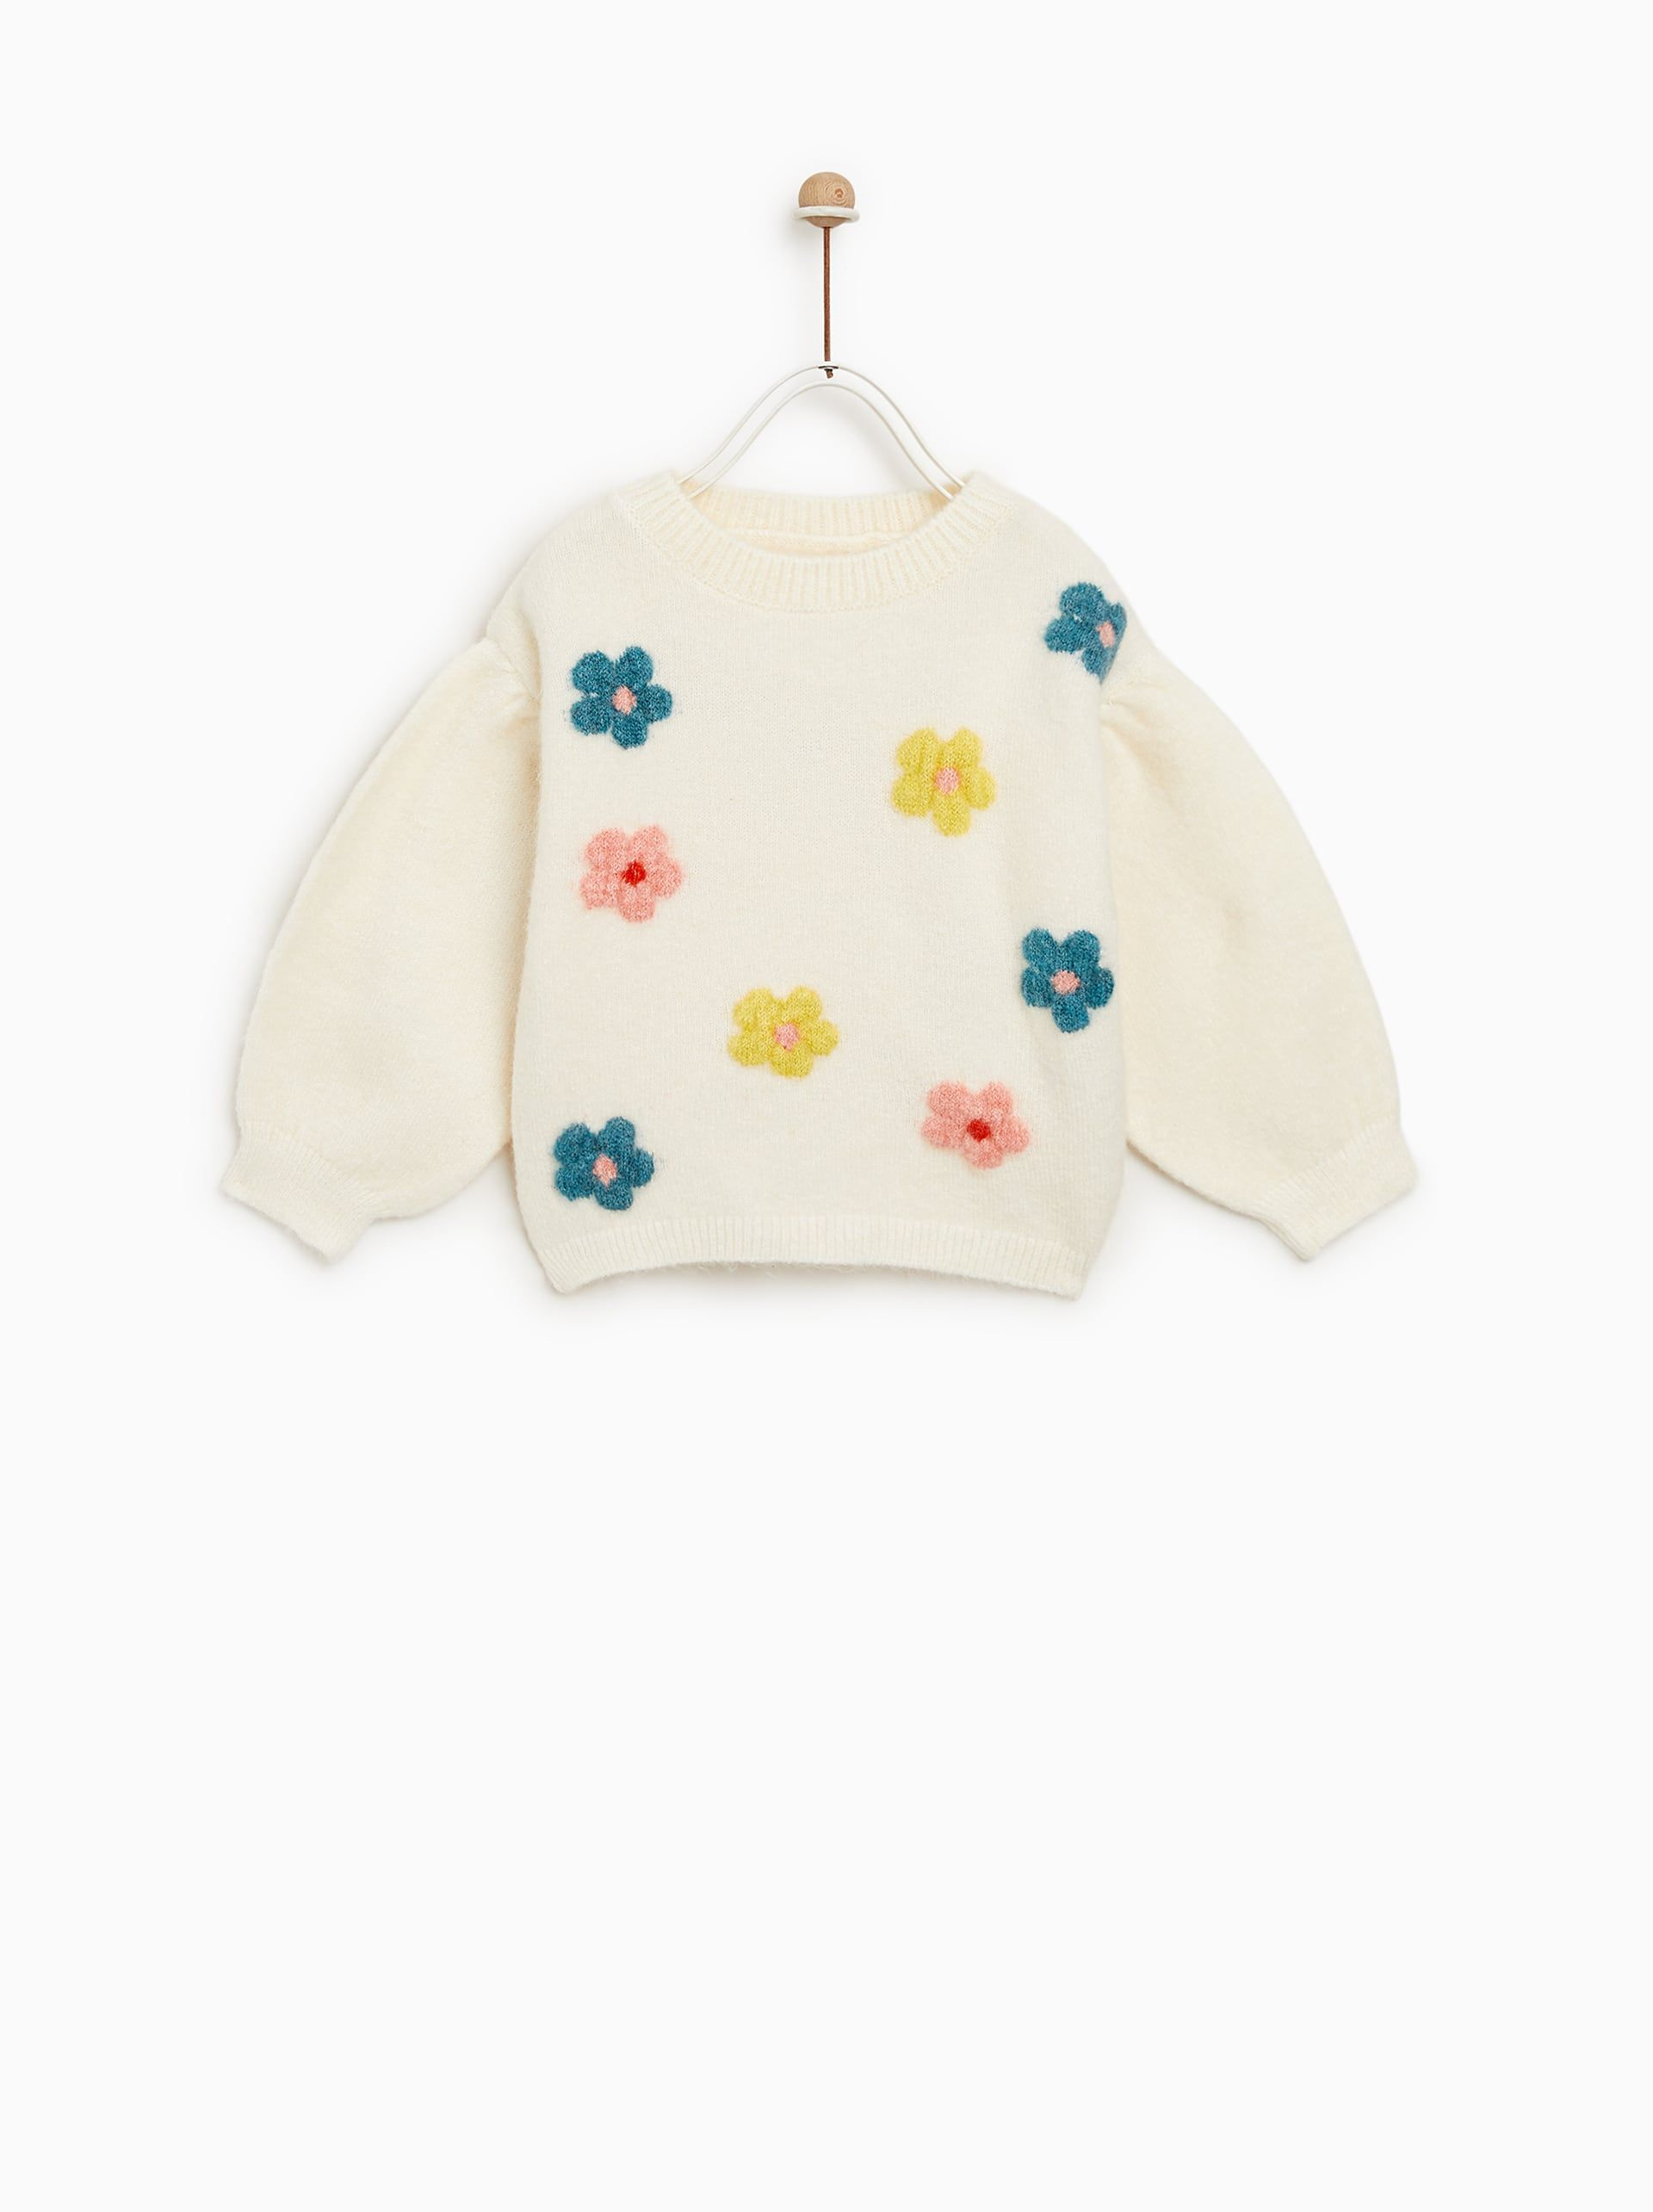 7527998e28 Floral sweater | bby clothes | Floral sweater, Zara baby clothes ...